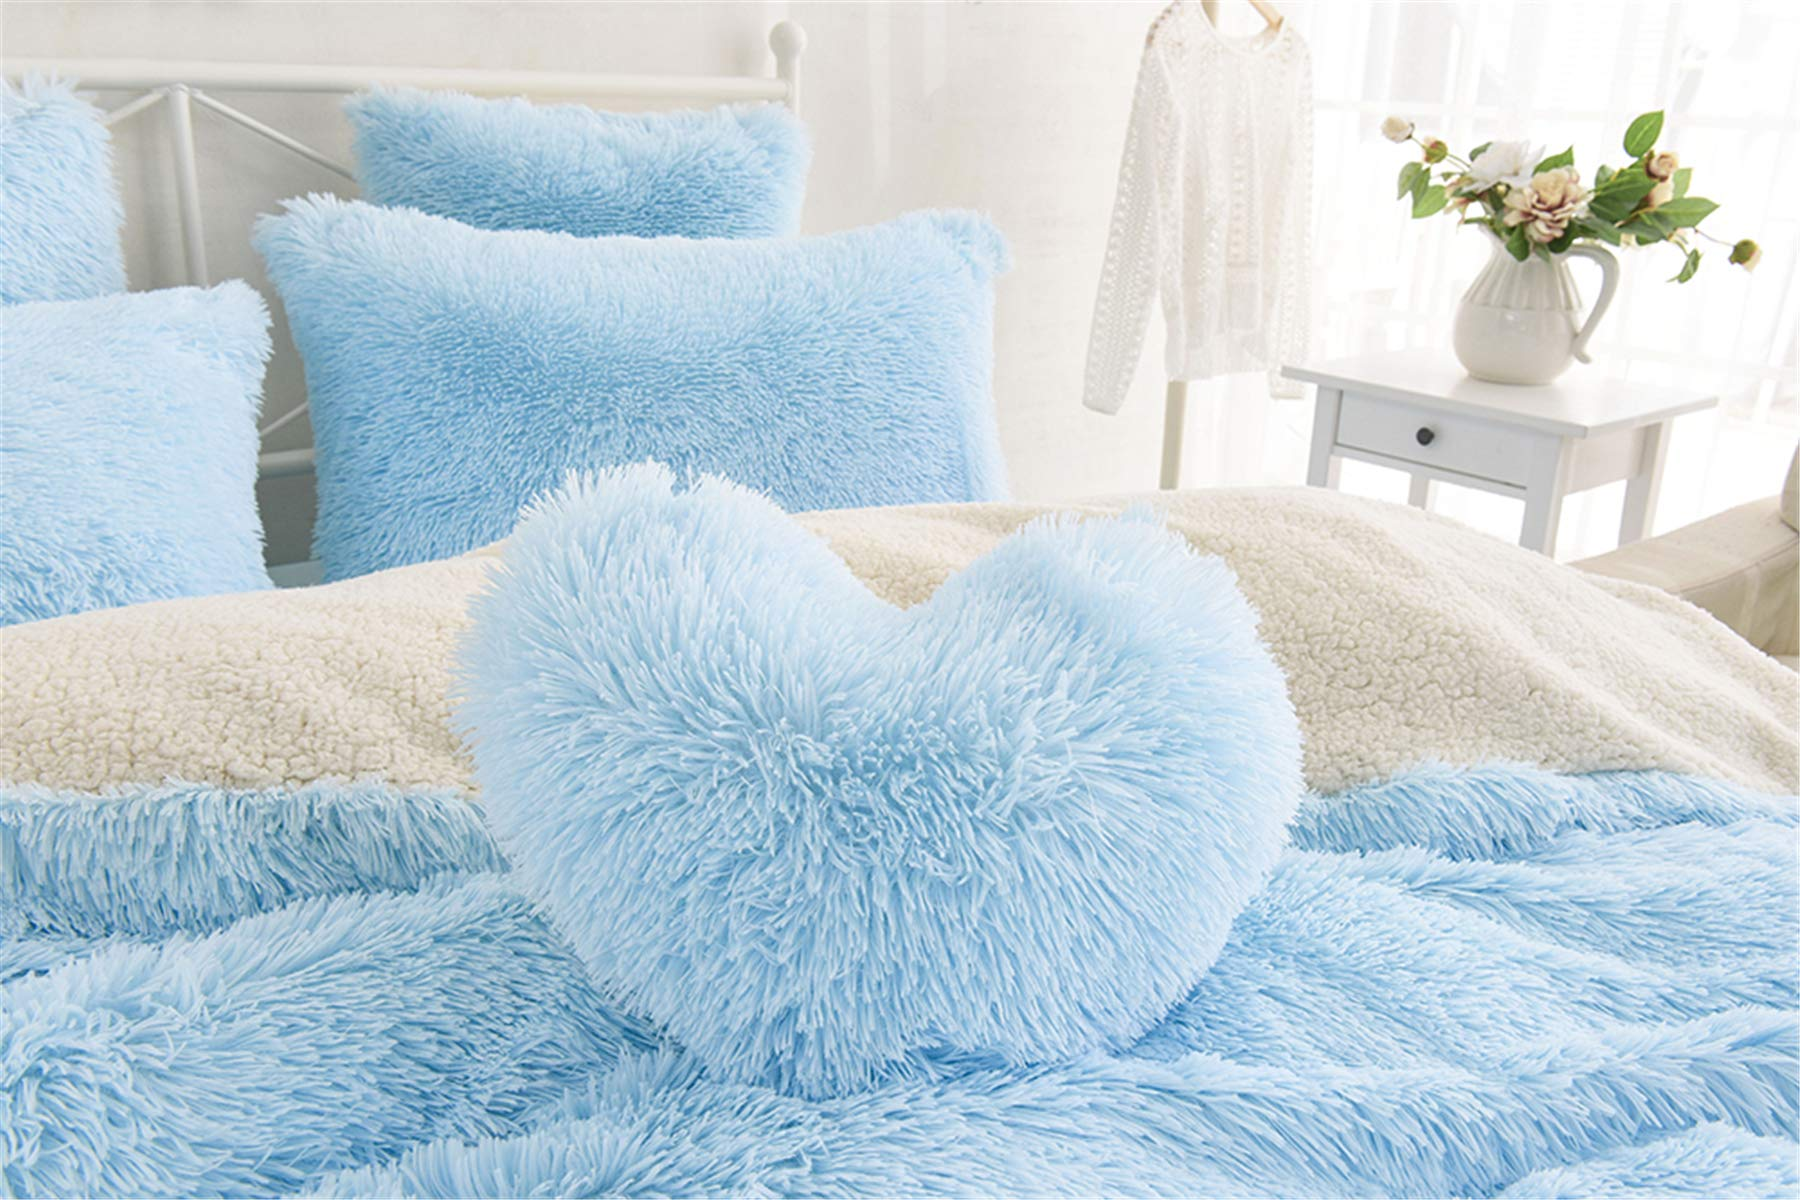 MooWoo Fluffy Heart Pillow, Shaggy Plush Faux Fur and Sherpa, Cute Soft Throw Cushion, Decorative for Home Bed Couch…